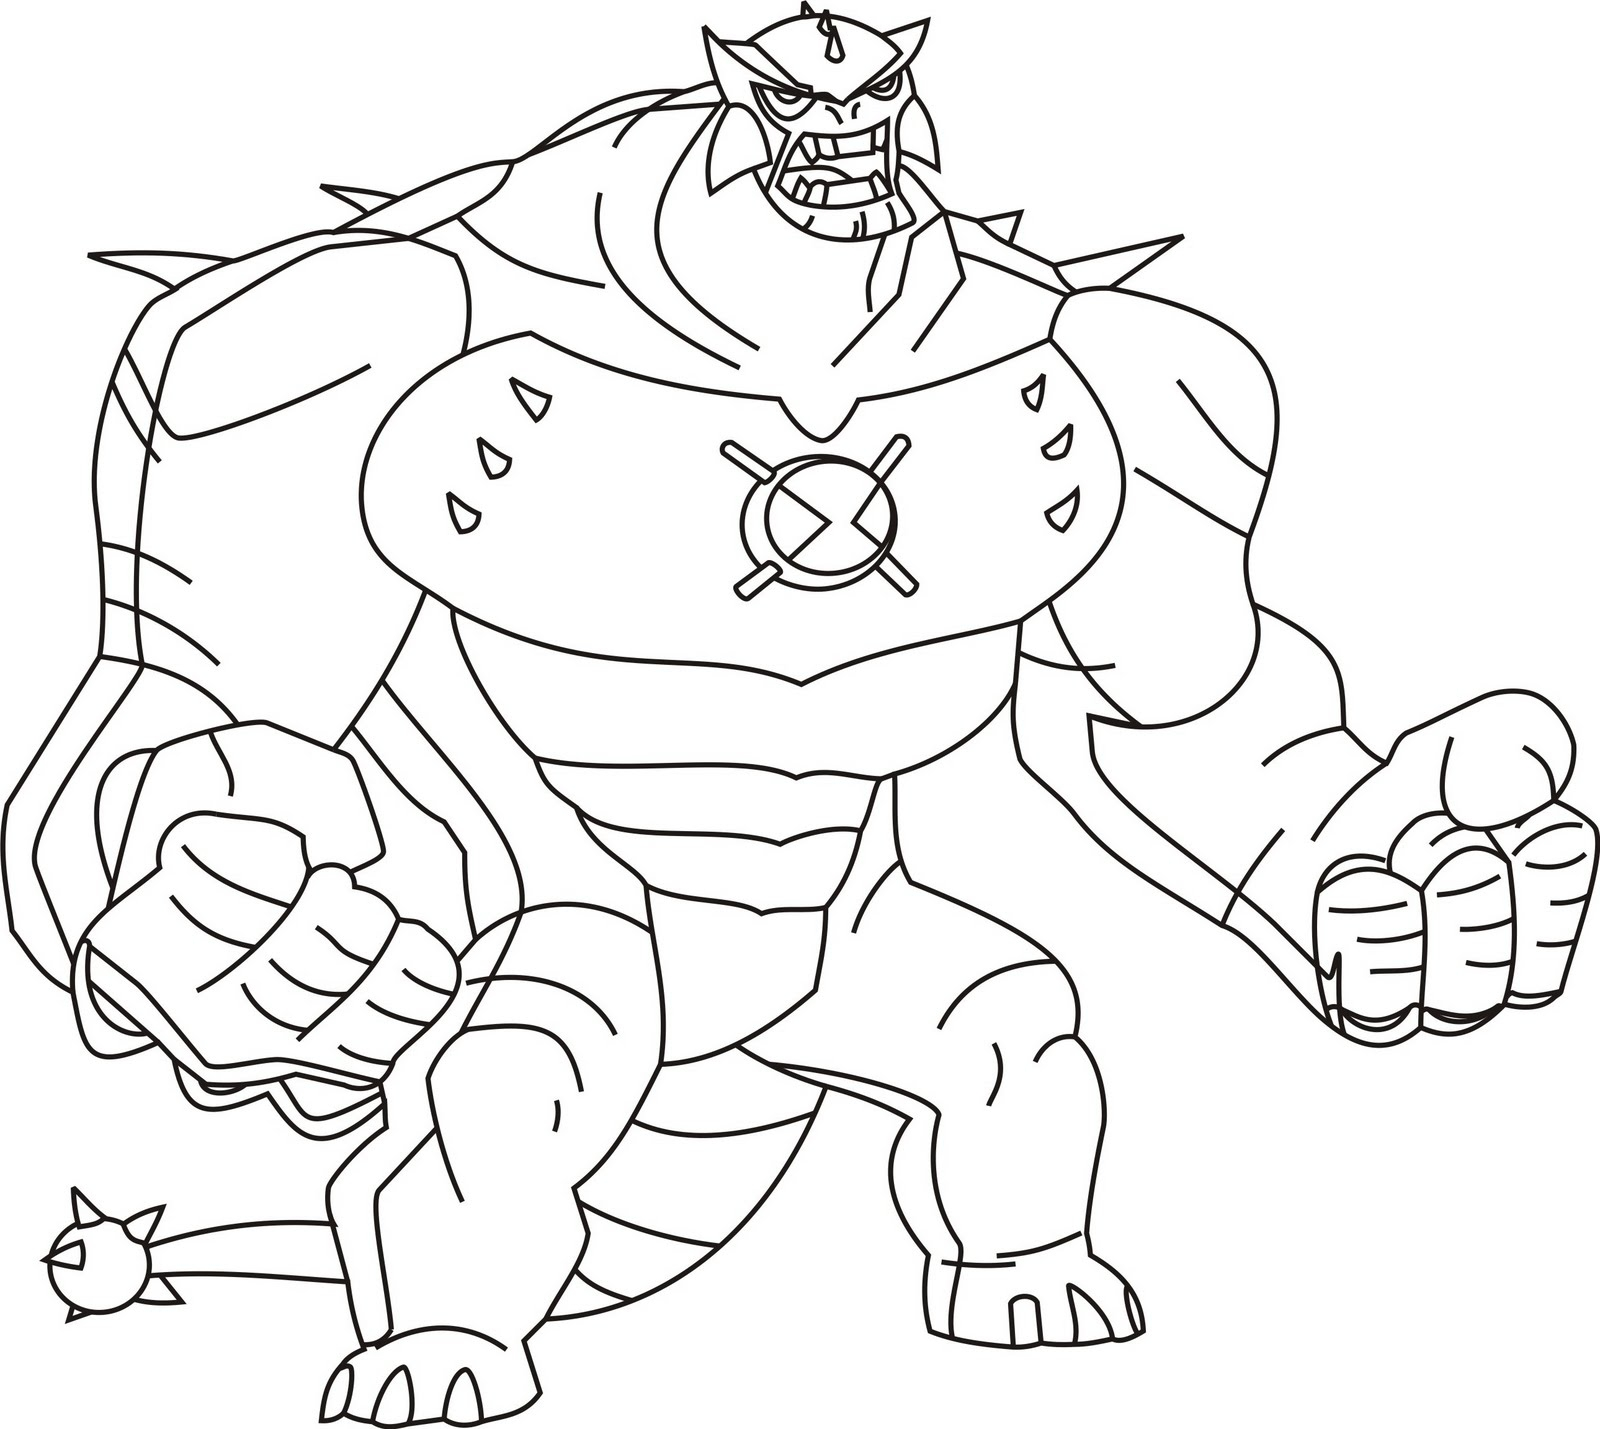 Ben Ten Coloring Pages - Free Printable Ben 10 Coloring Pages for Kids